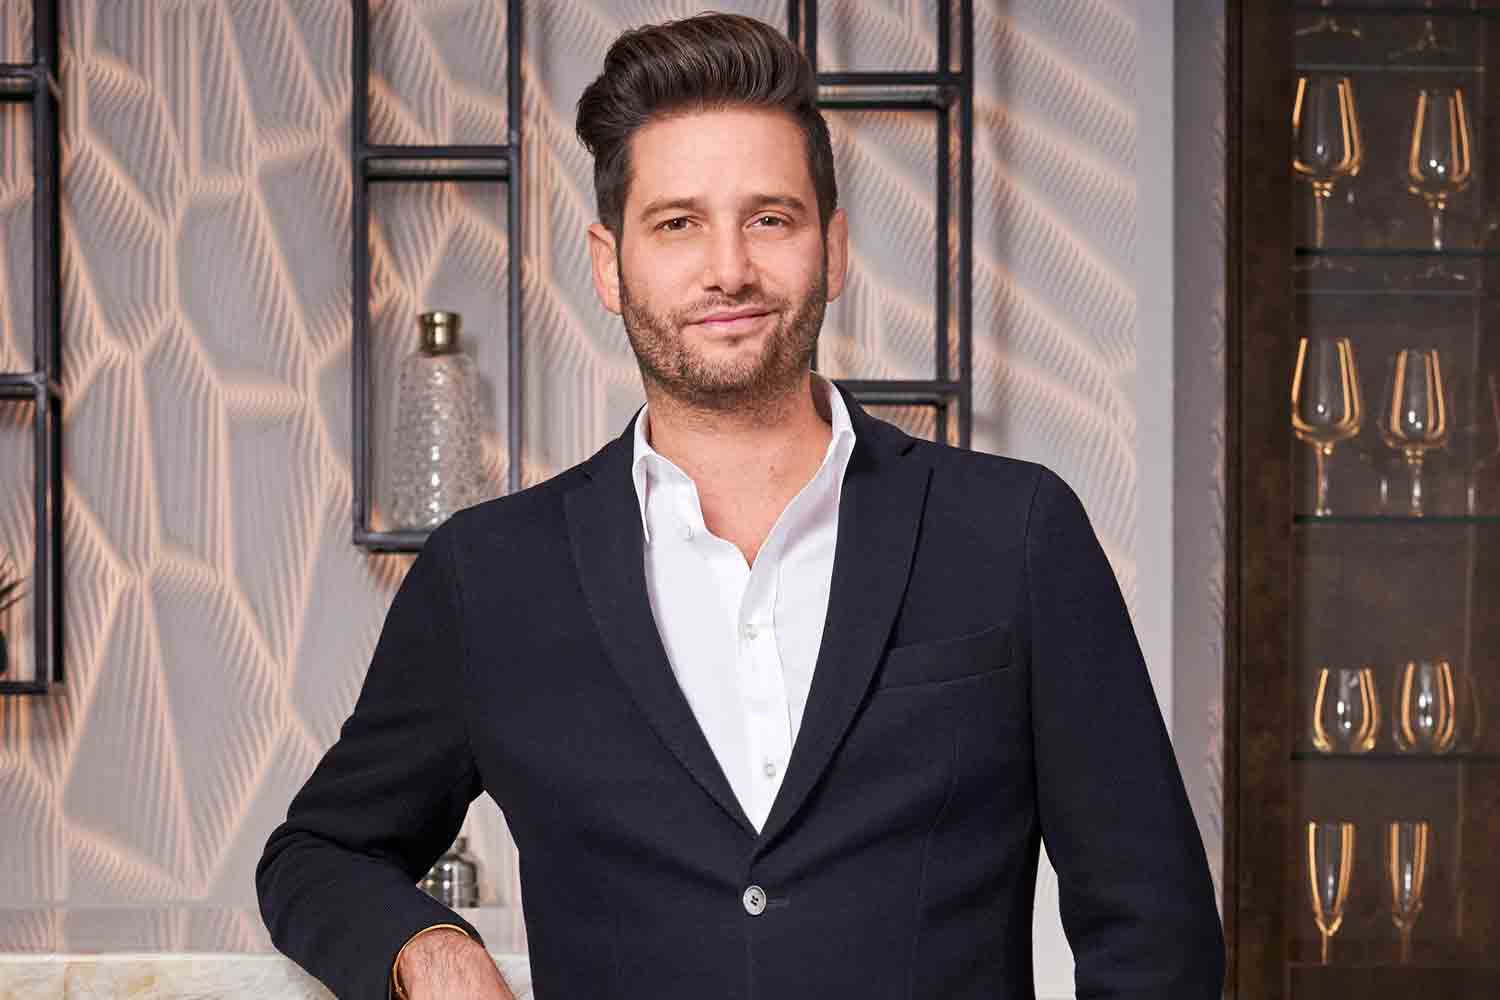 Josh Flagg Late Grandmother Connection